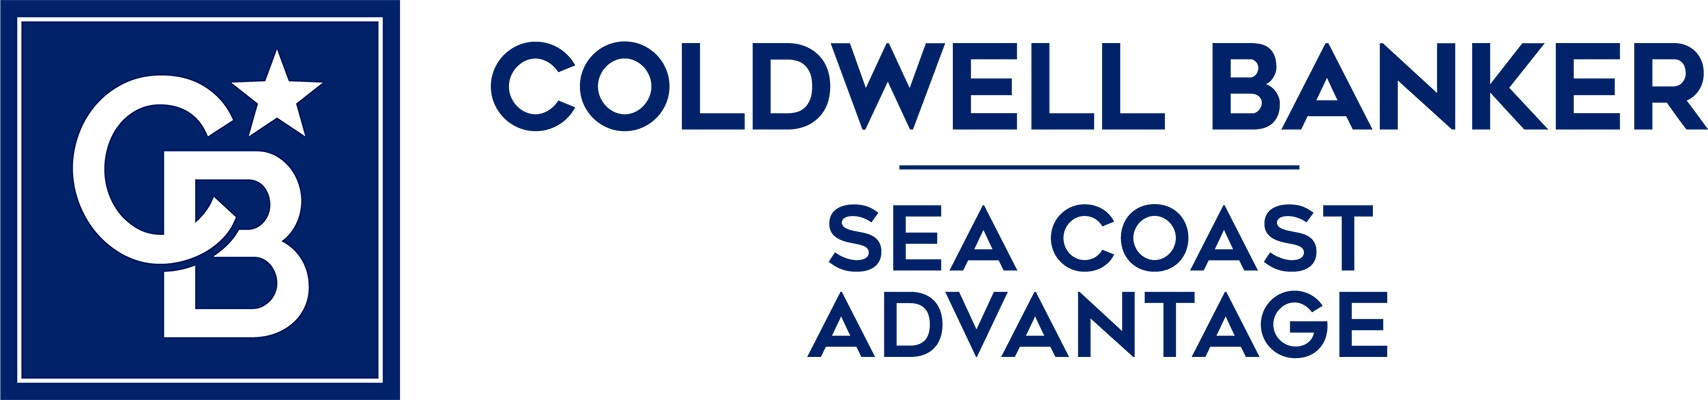 Allison Eagen Donovan - Coldwell Banker Sea Coast Advantage Realty